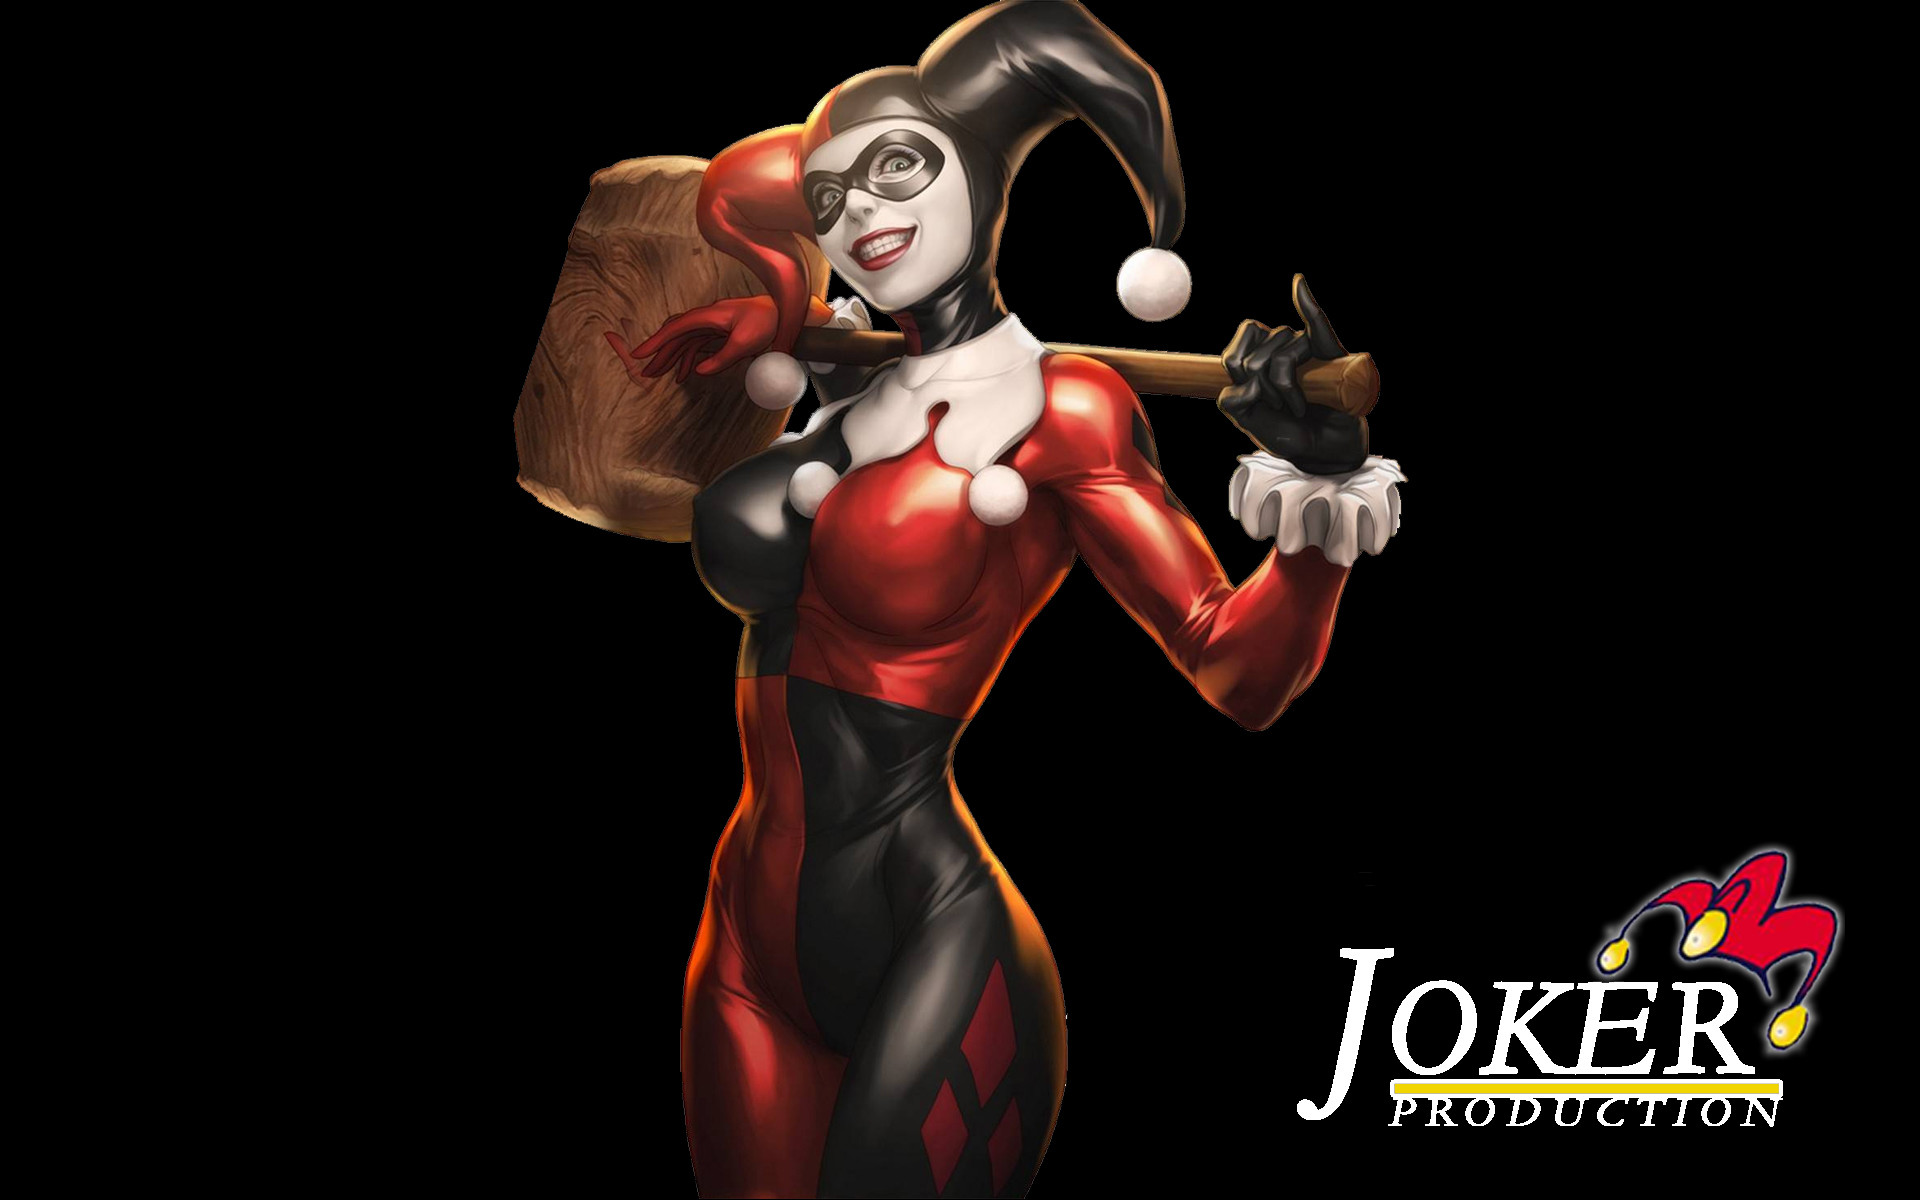 Joker and harley quinn wallpaper 71 images - Harley quinn hd wallpapers for android ...